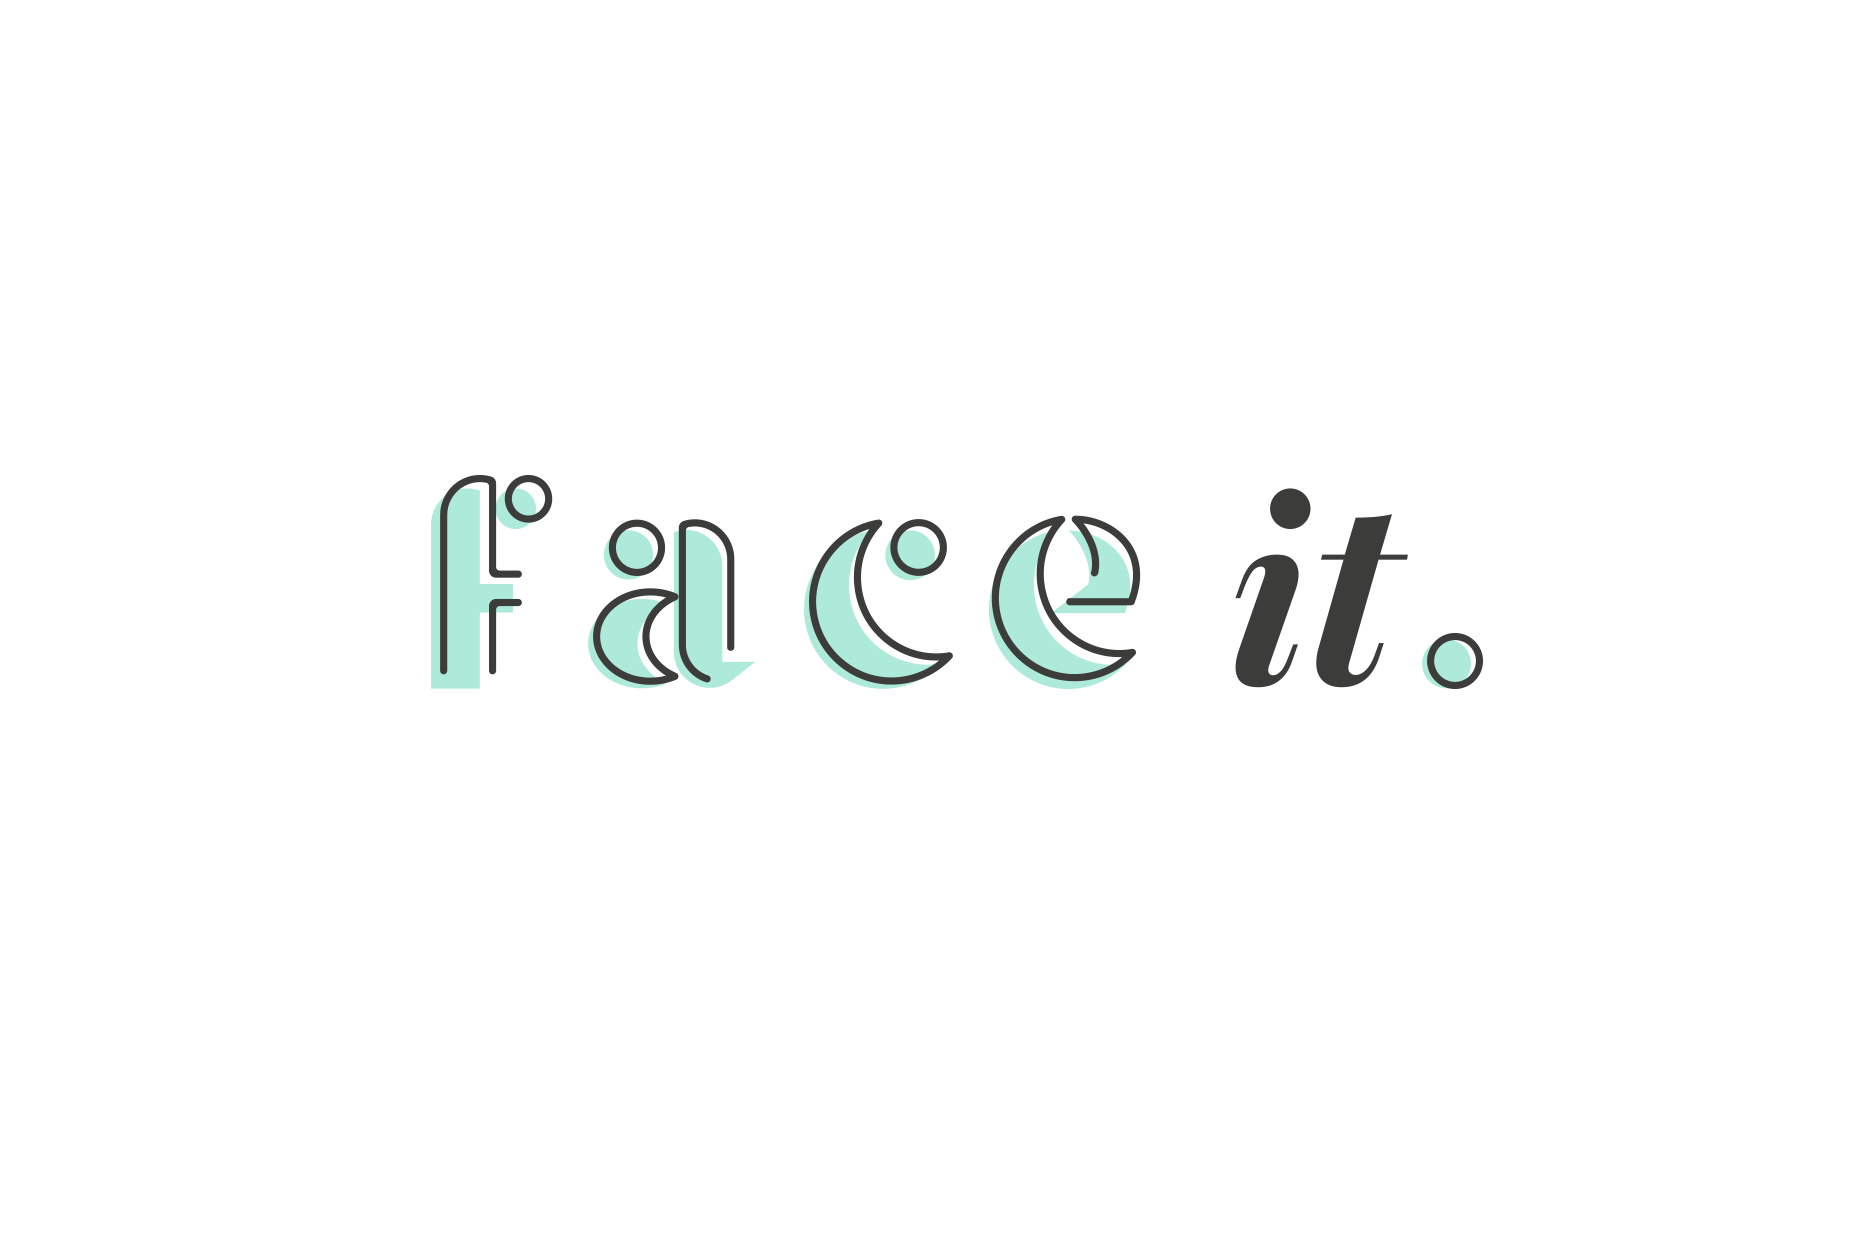 Final logo design for 'face it', a face and body rehydrating moisturiser - Designed by Wiltshire-based graphic designer, Kaye Huett